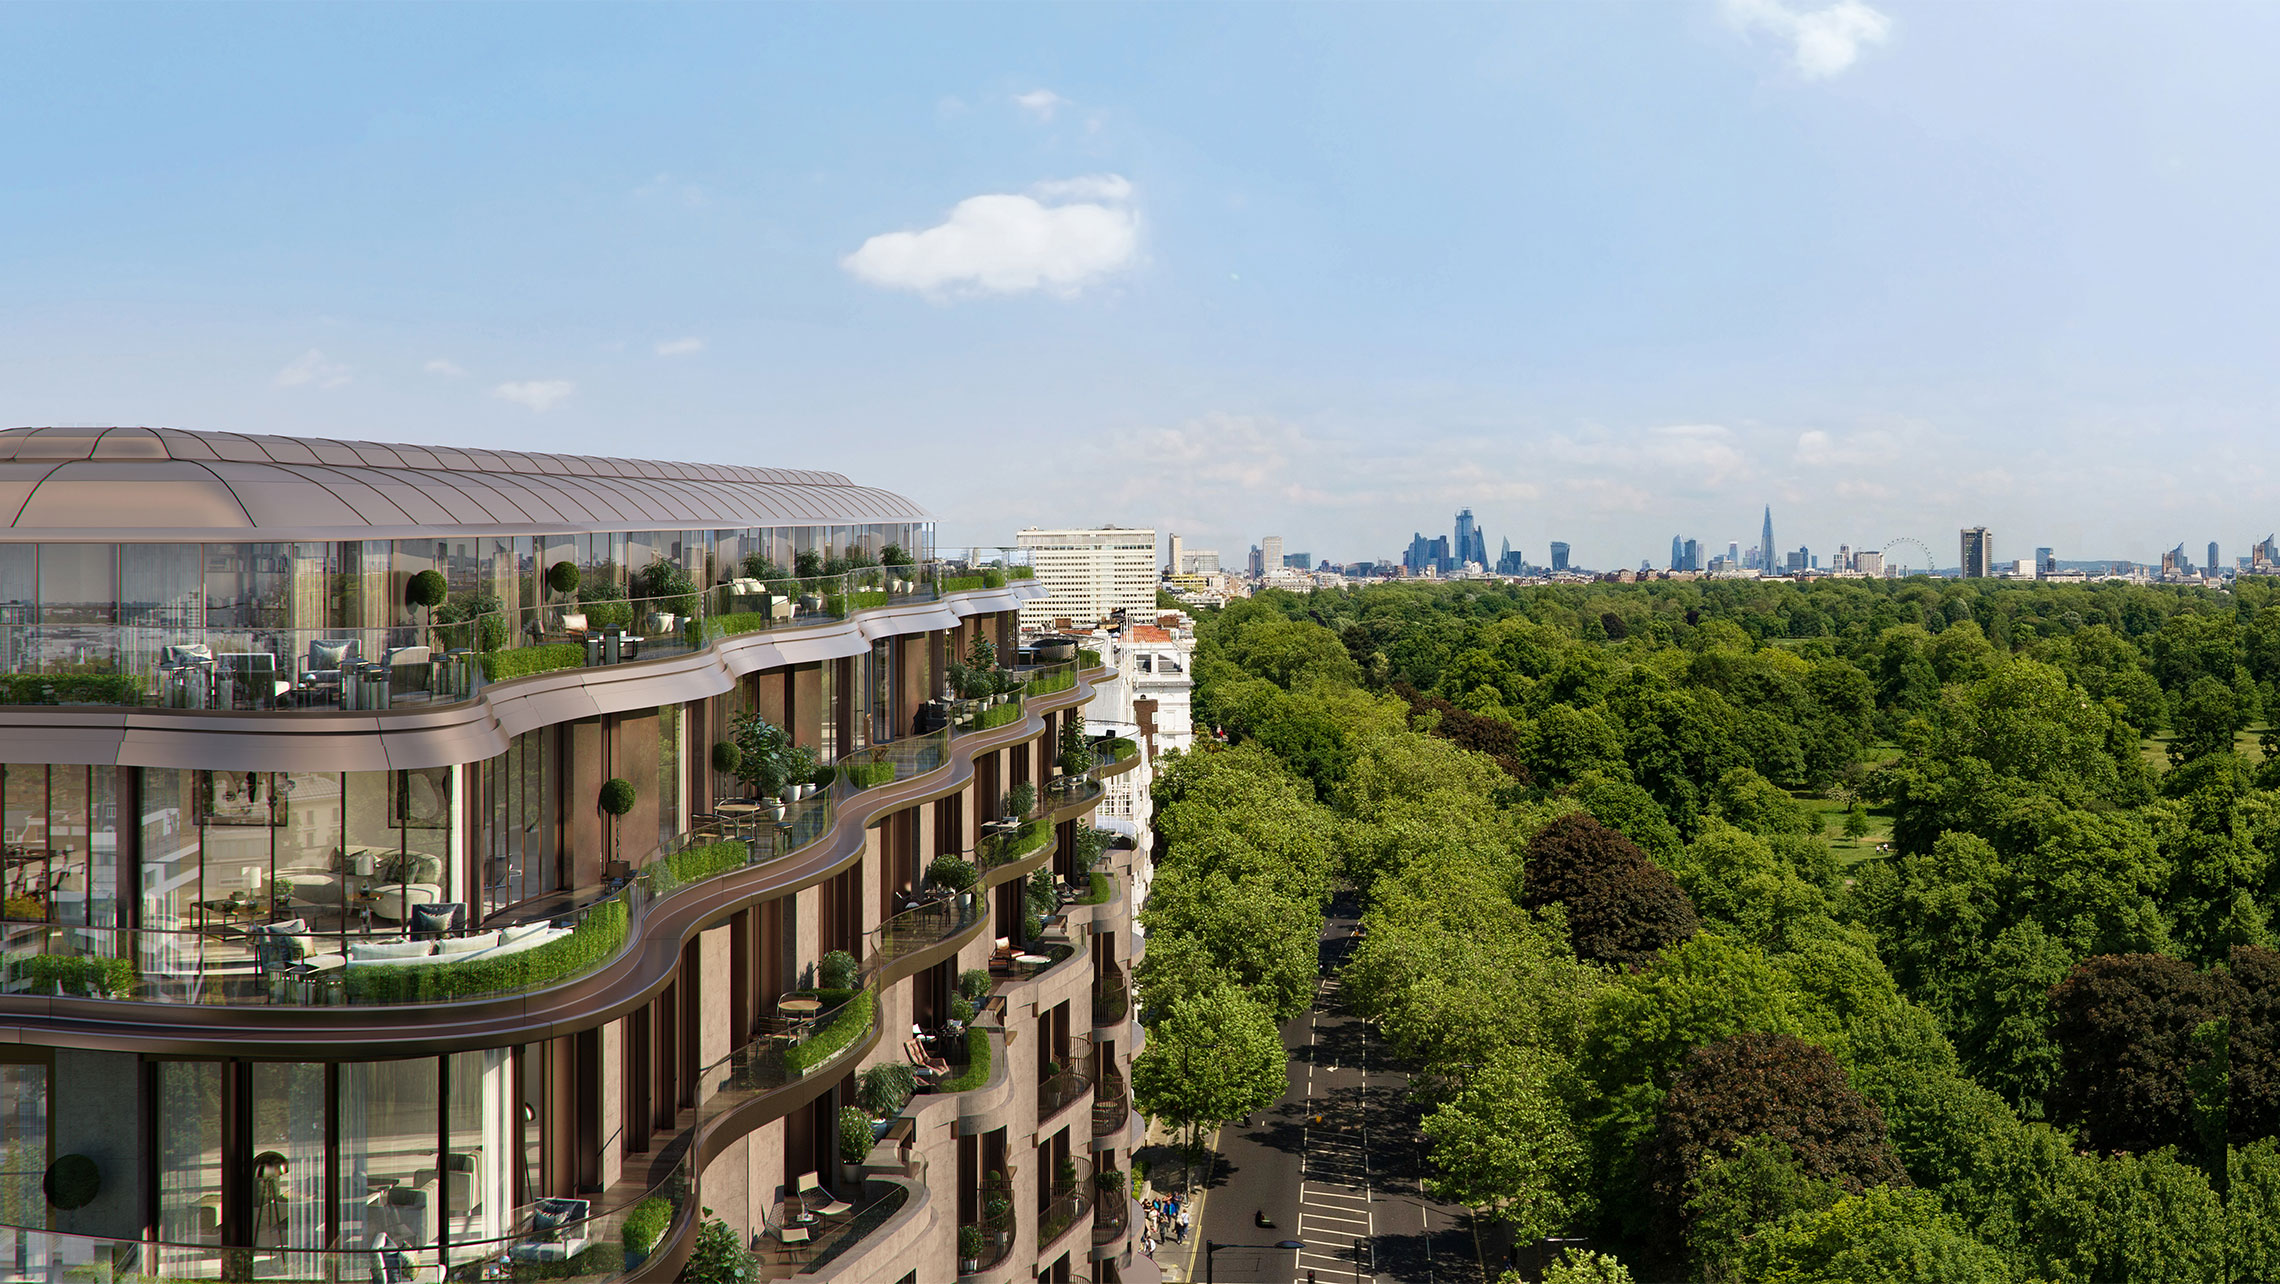 A CGI image of the Park Modern development to the left and Hyde Park to the right